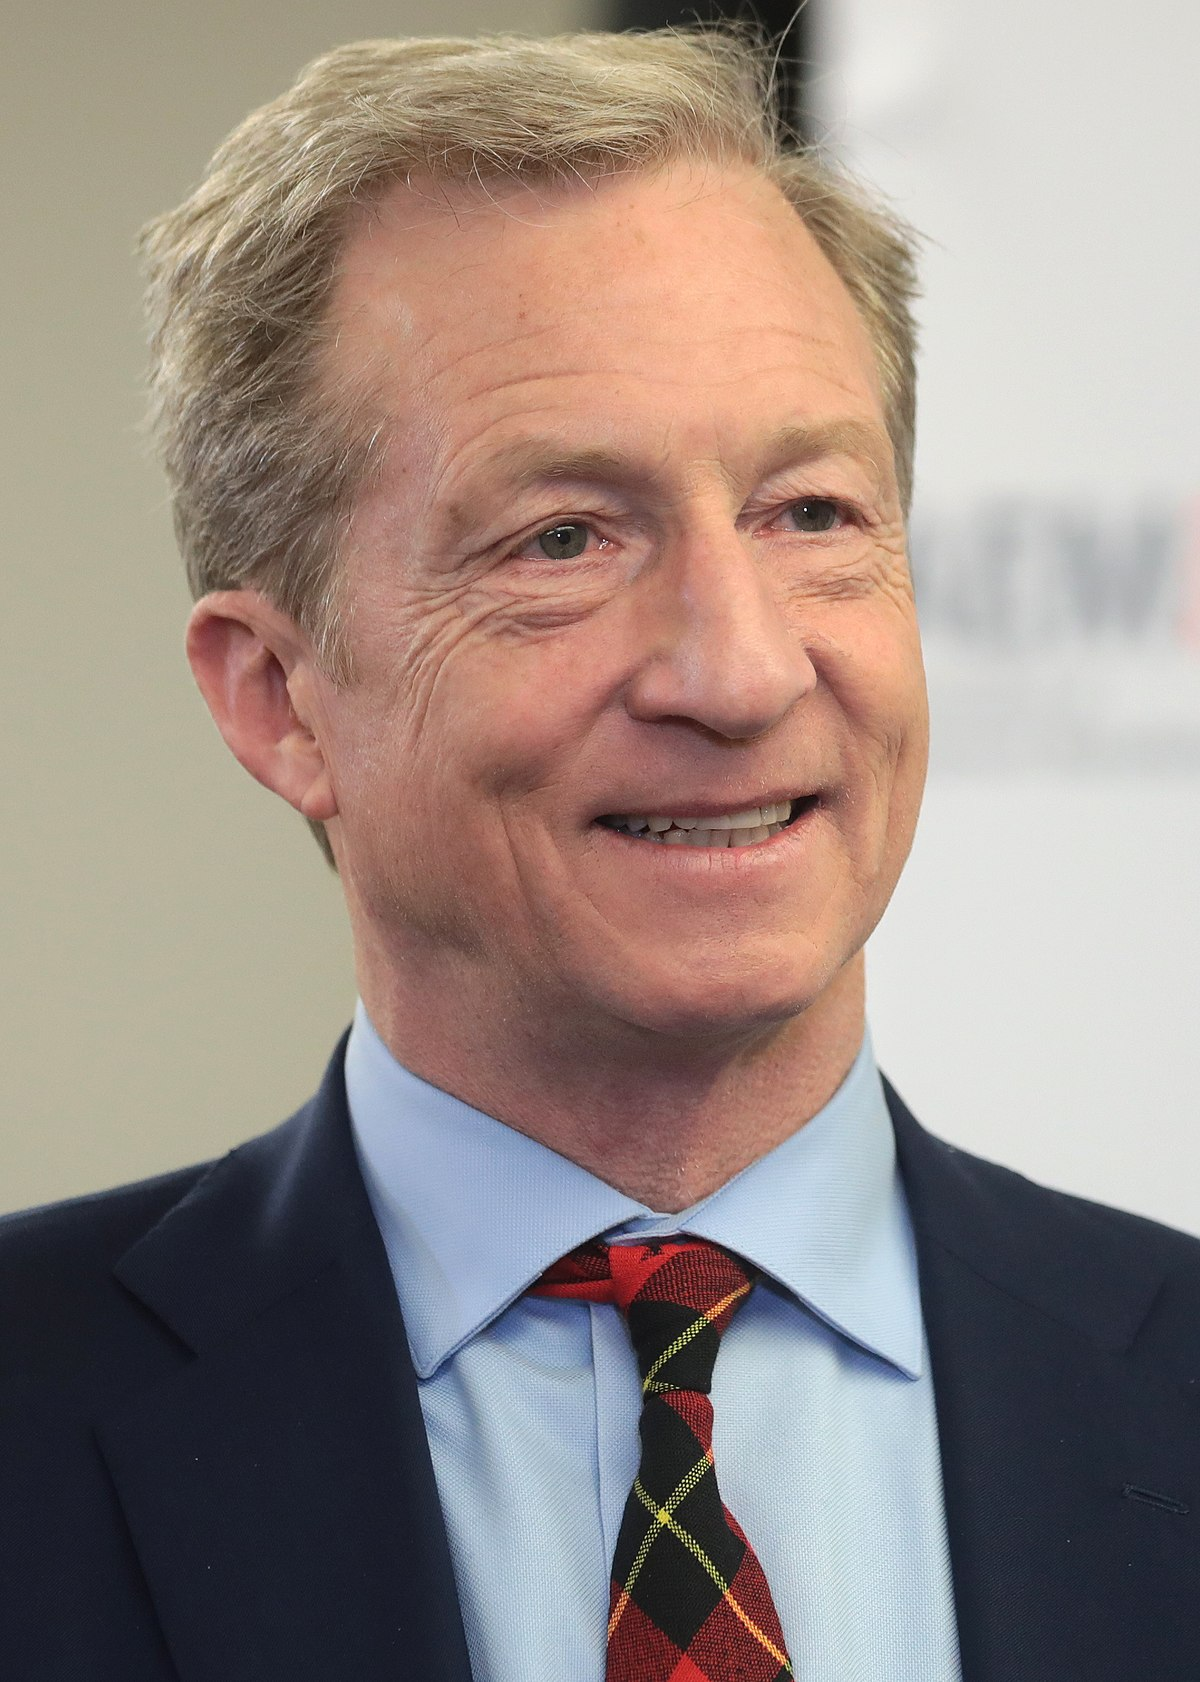 Tom steyer investments bozikis investments in the philippines